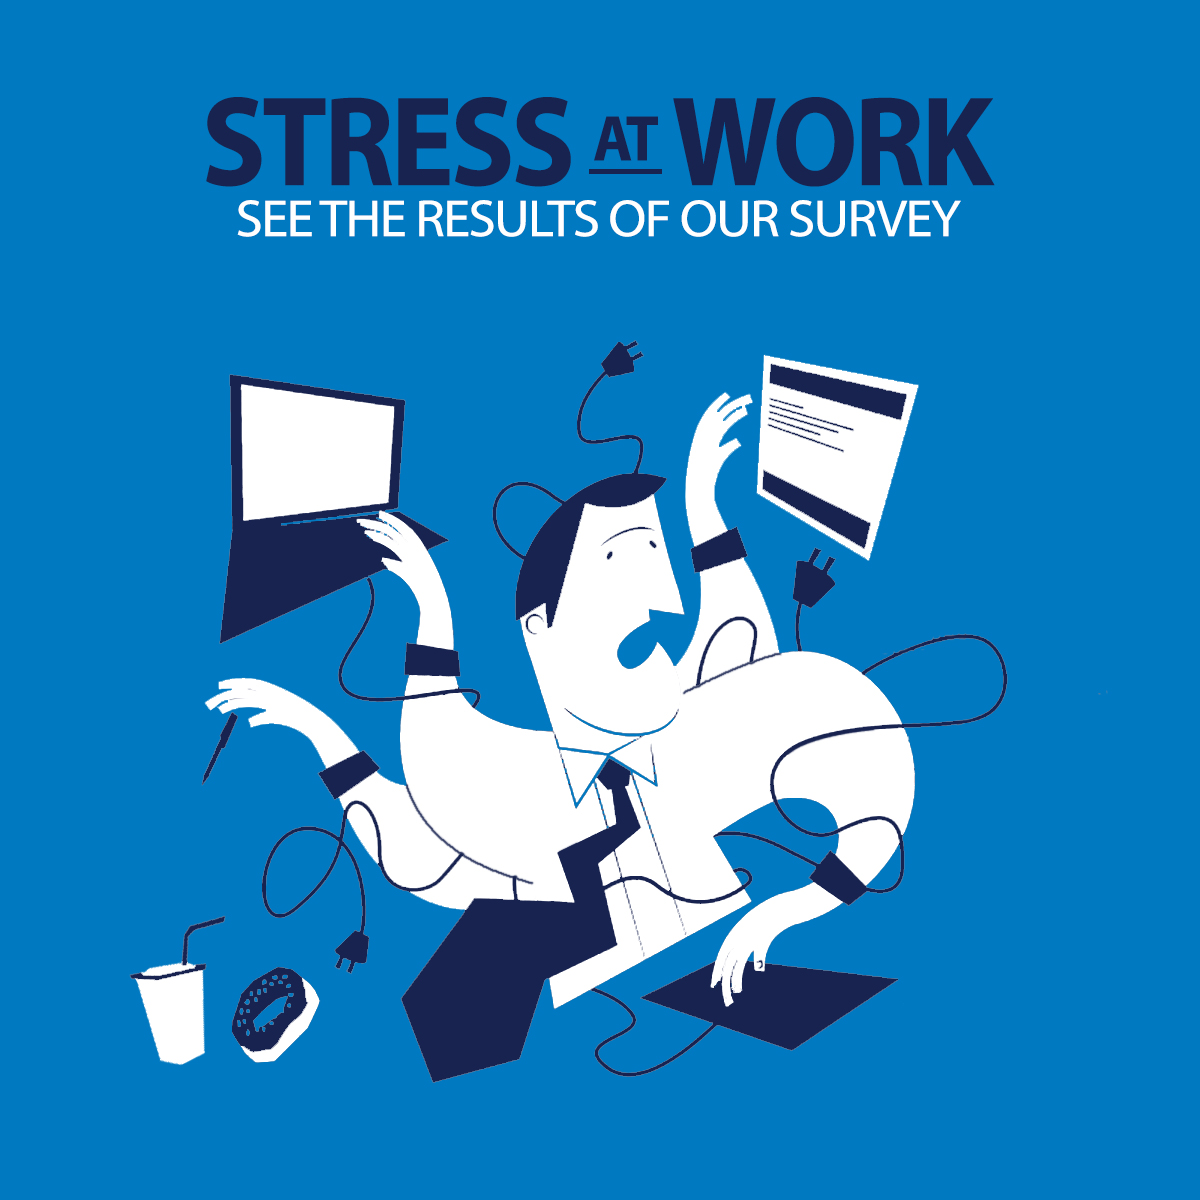 the relation of technology and stress in the workplace Work-related stress arises where work demands of various types and combinations exceed the person's capacity and capability to cope work-related stress is the second most common compensated illness/injury in australia, after musculoskeletal disorders.